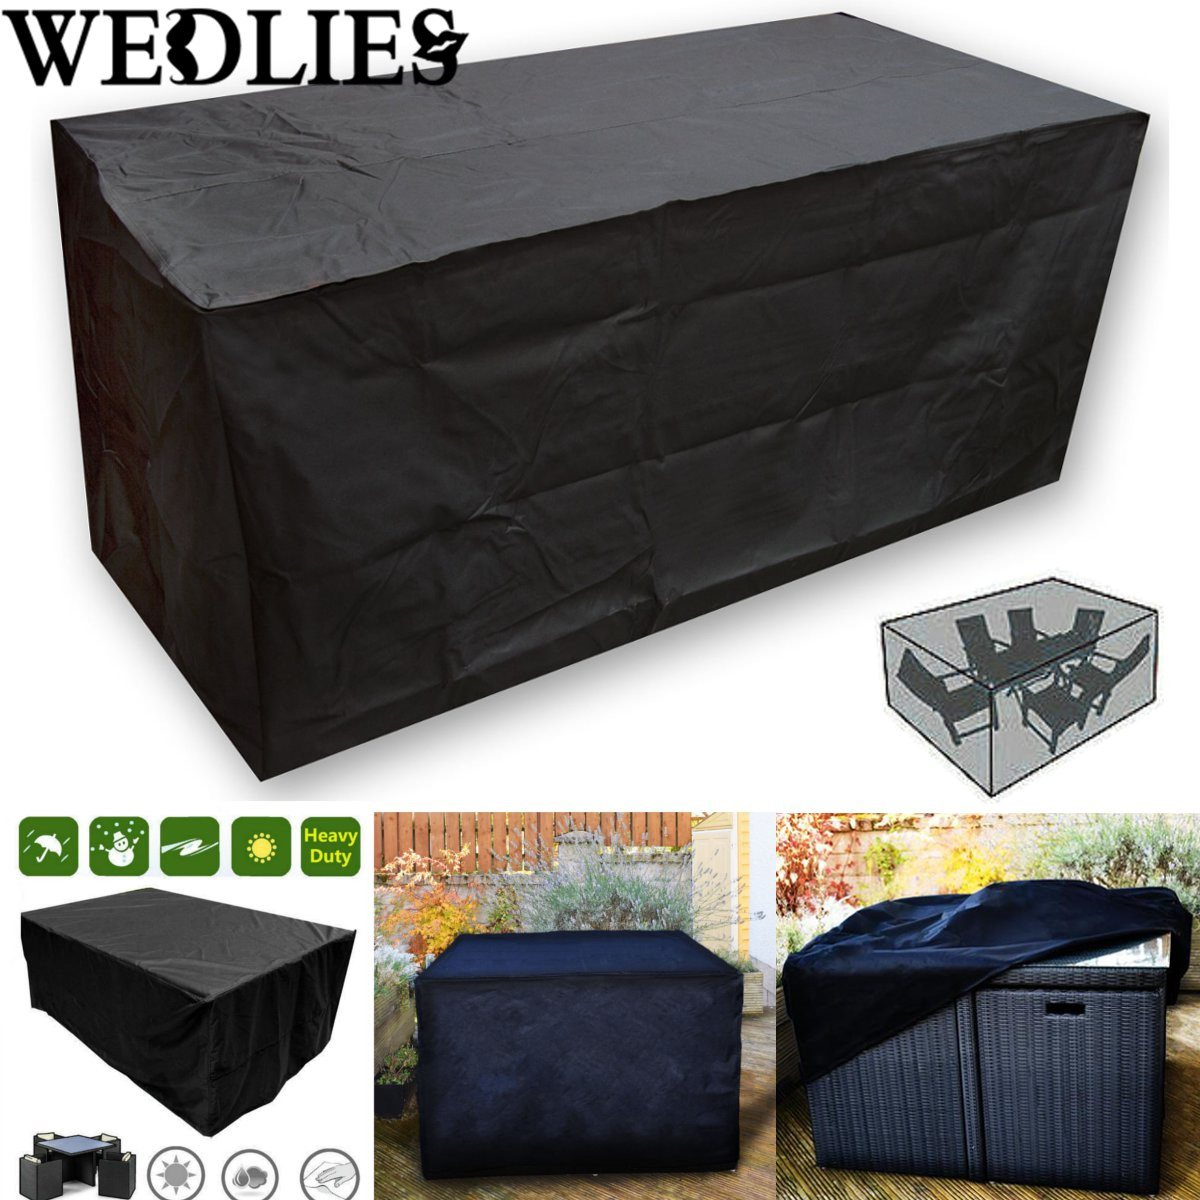 black outdoor chair covers wedding and sashes for hire waterproof patio furniture set cover garden